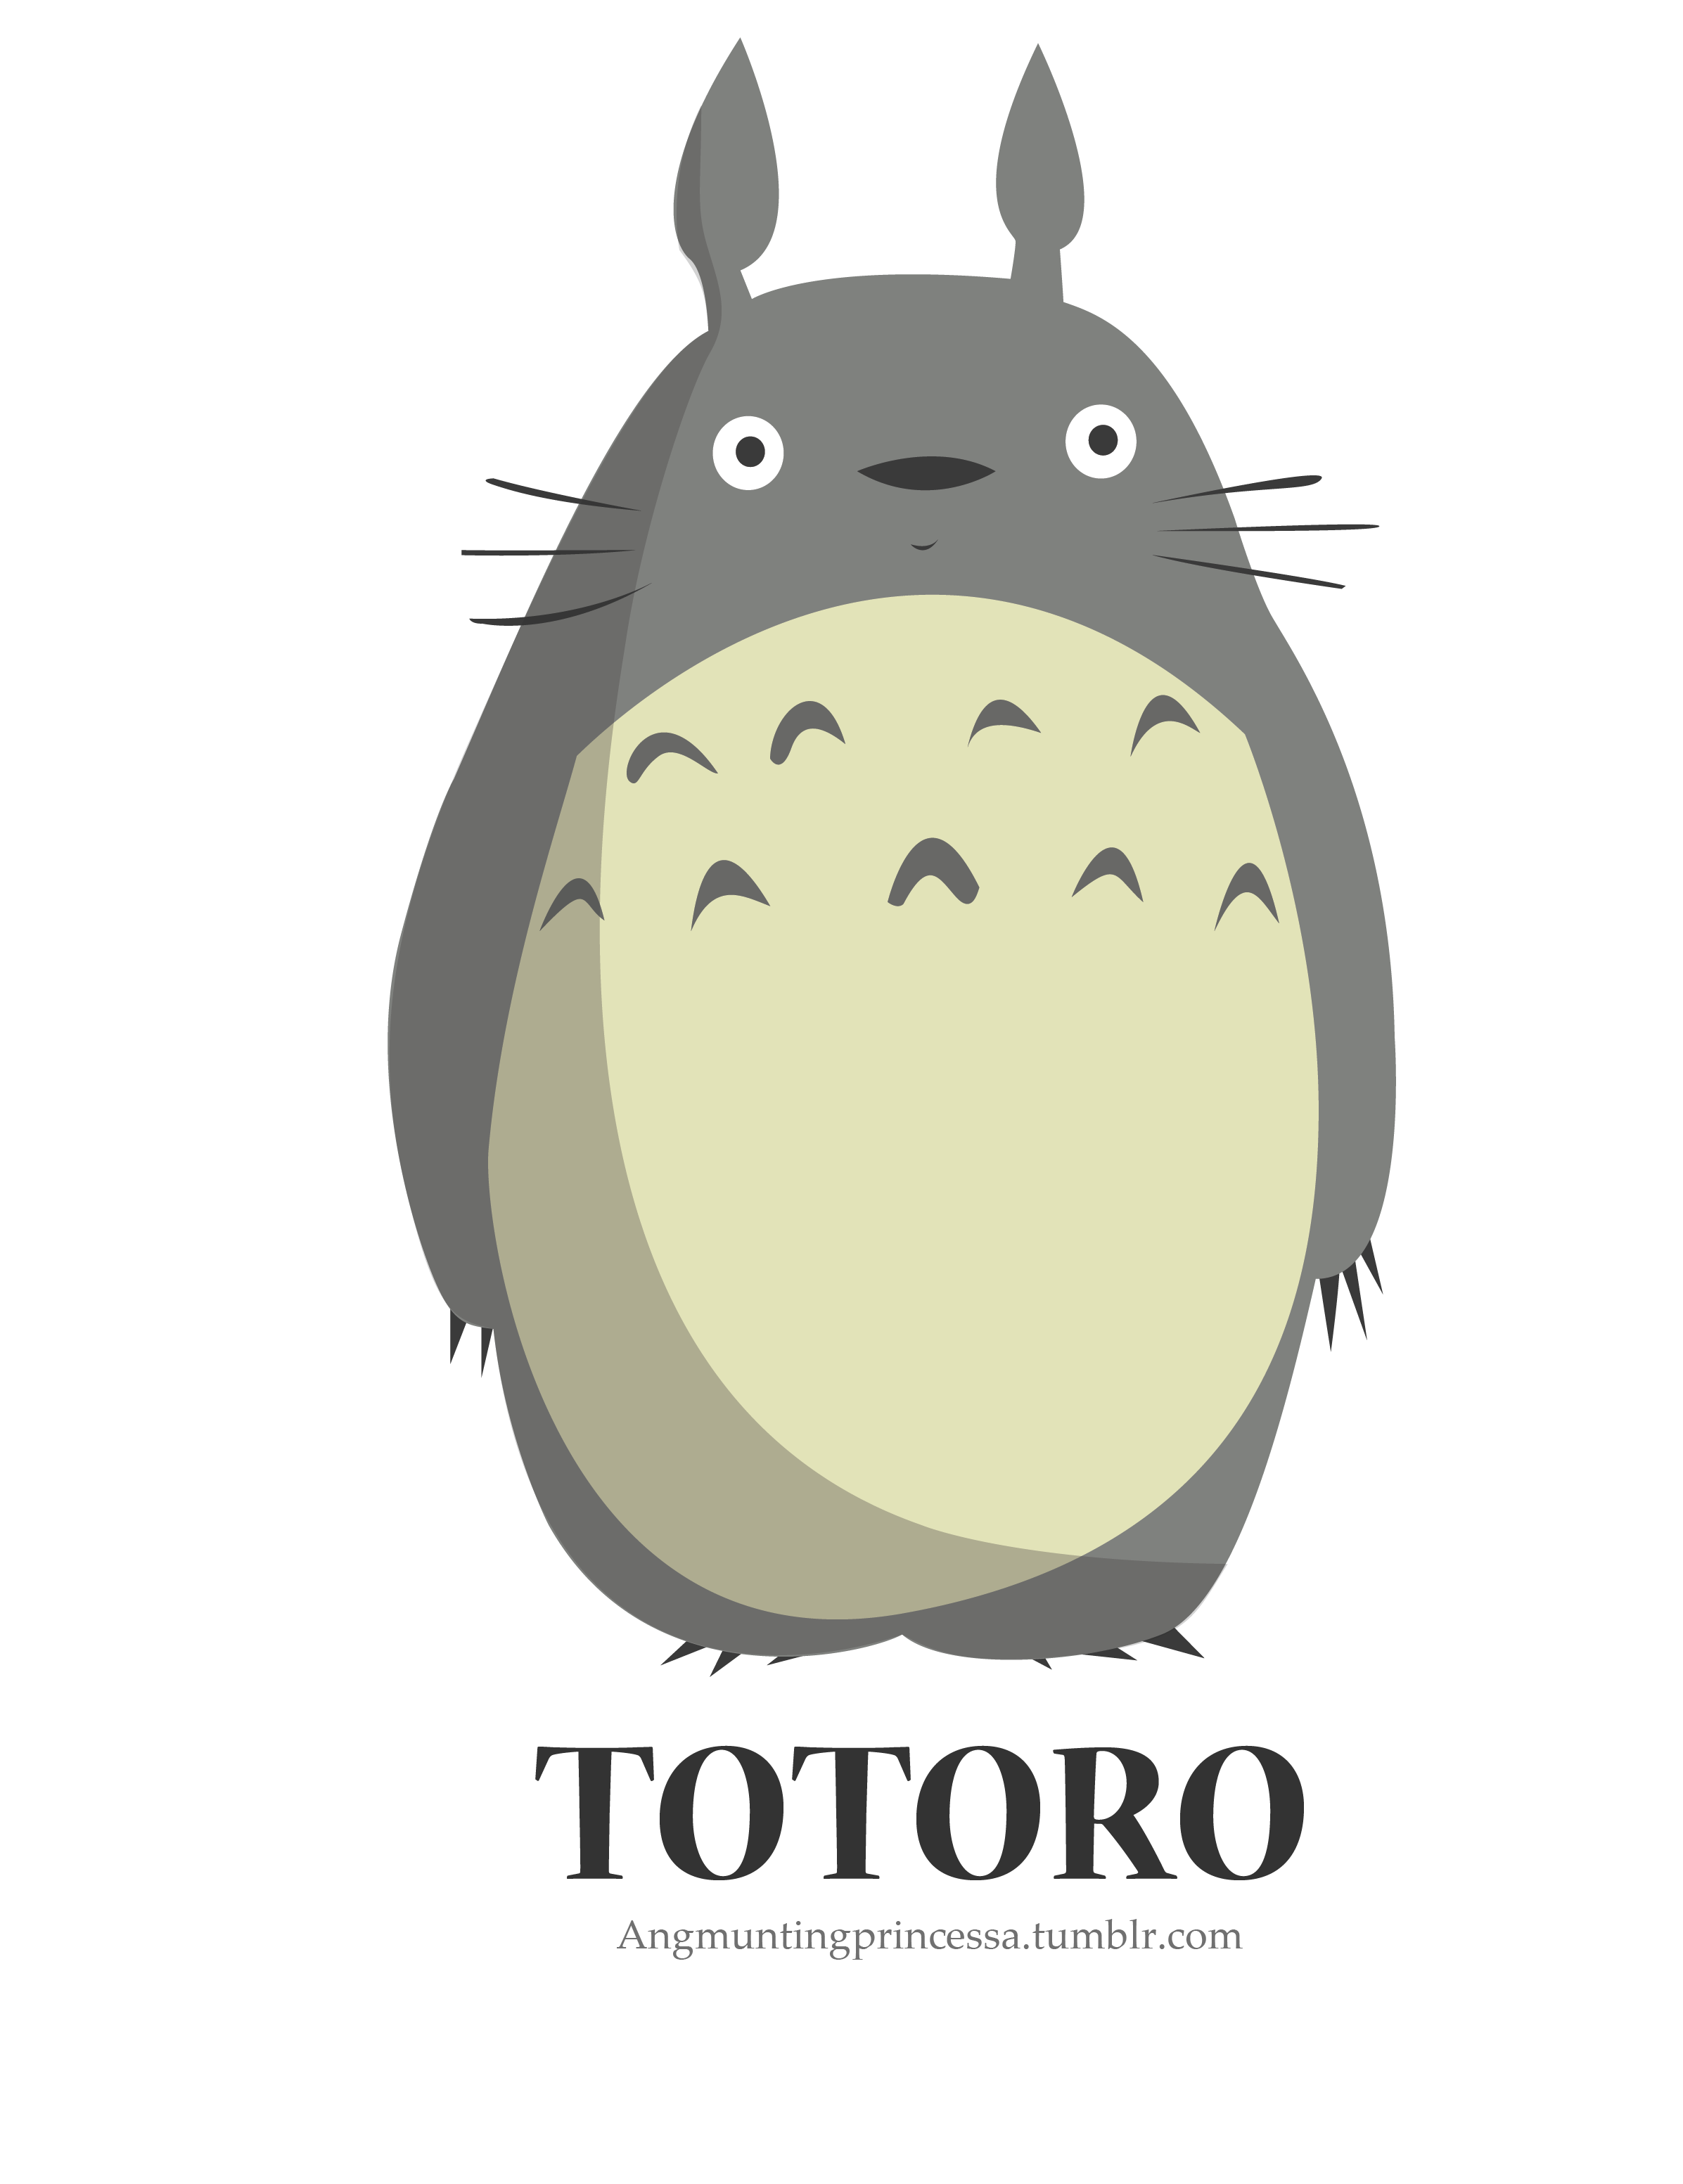 Manatee clipart vector. Totoro for keyan pinterest